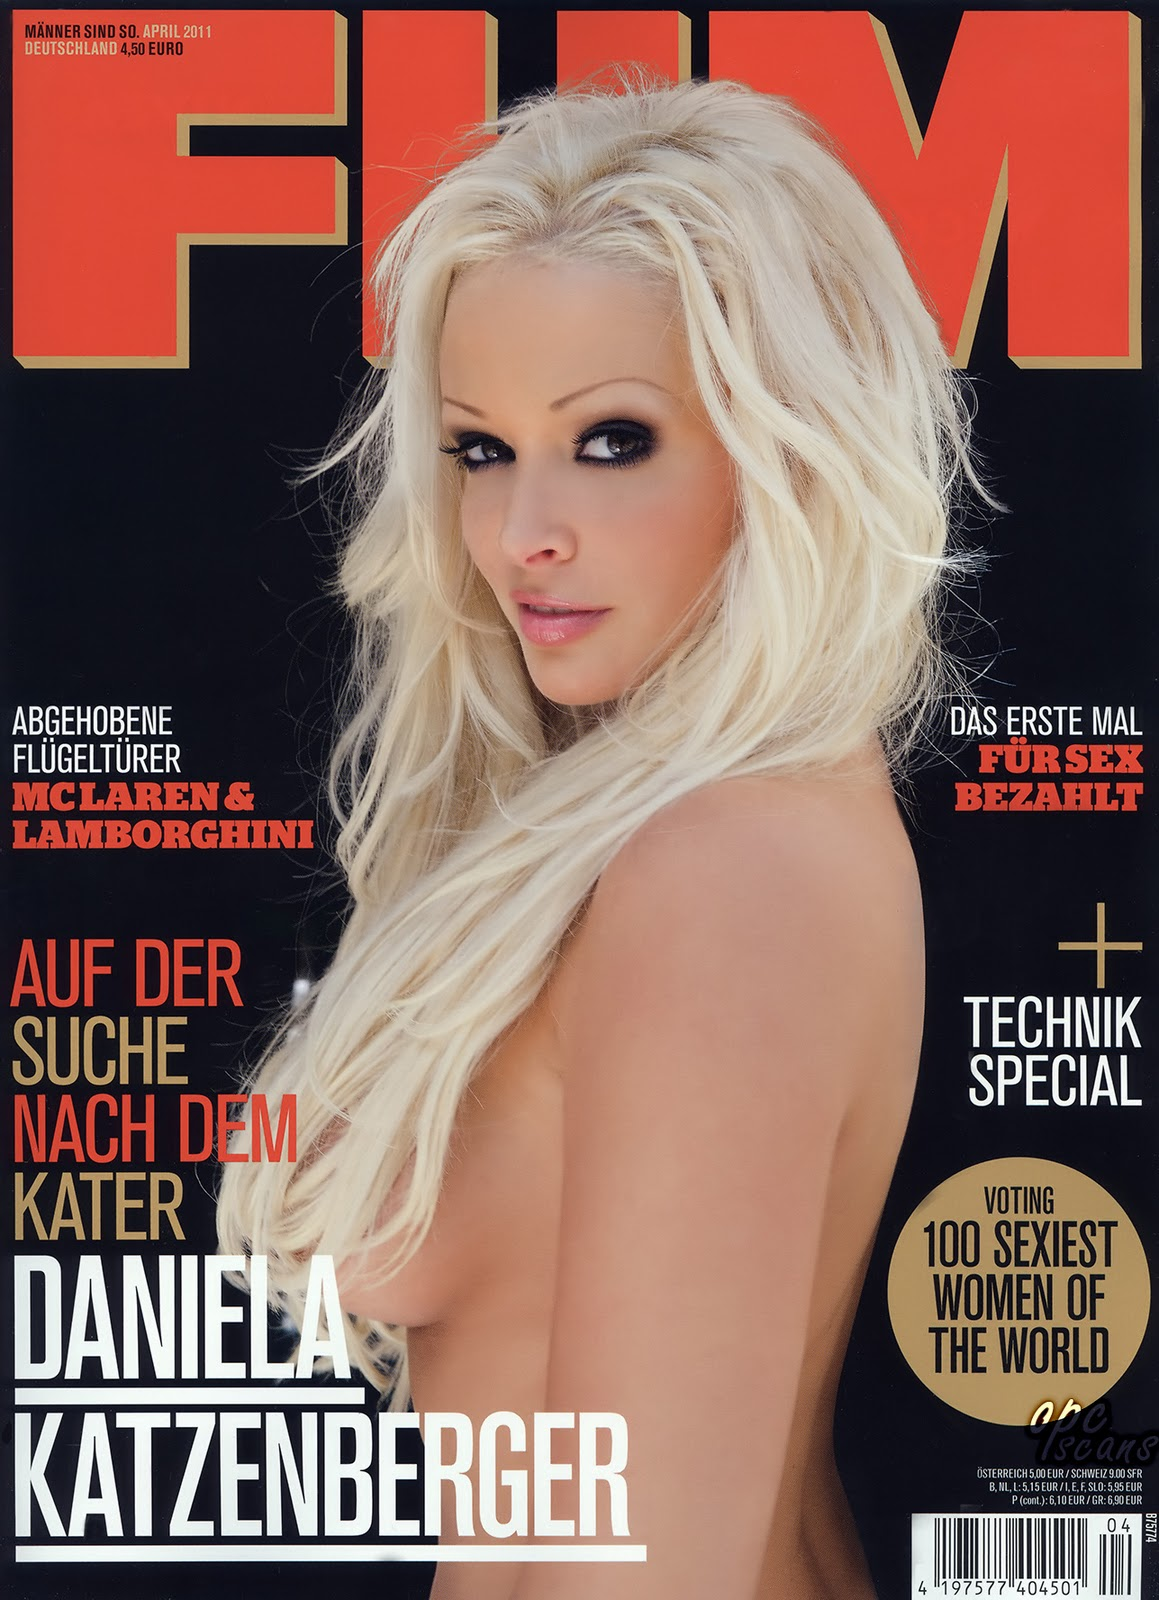 Daniela Katzenberger on FHM, Germany, April 2011